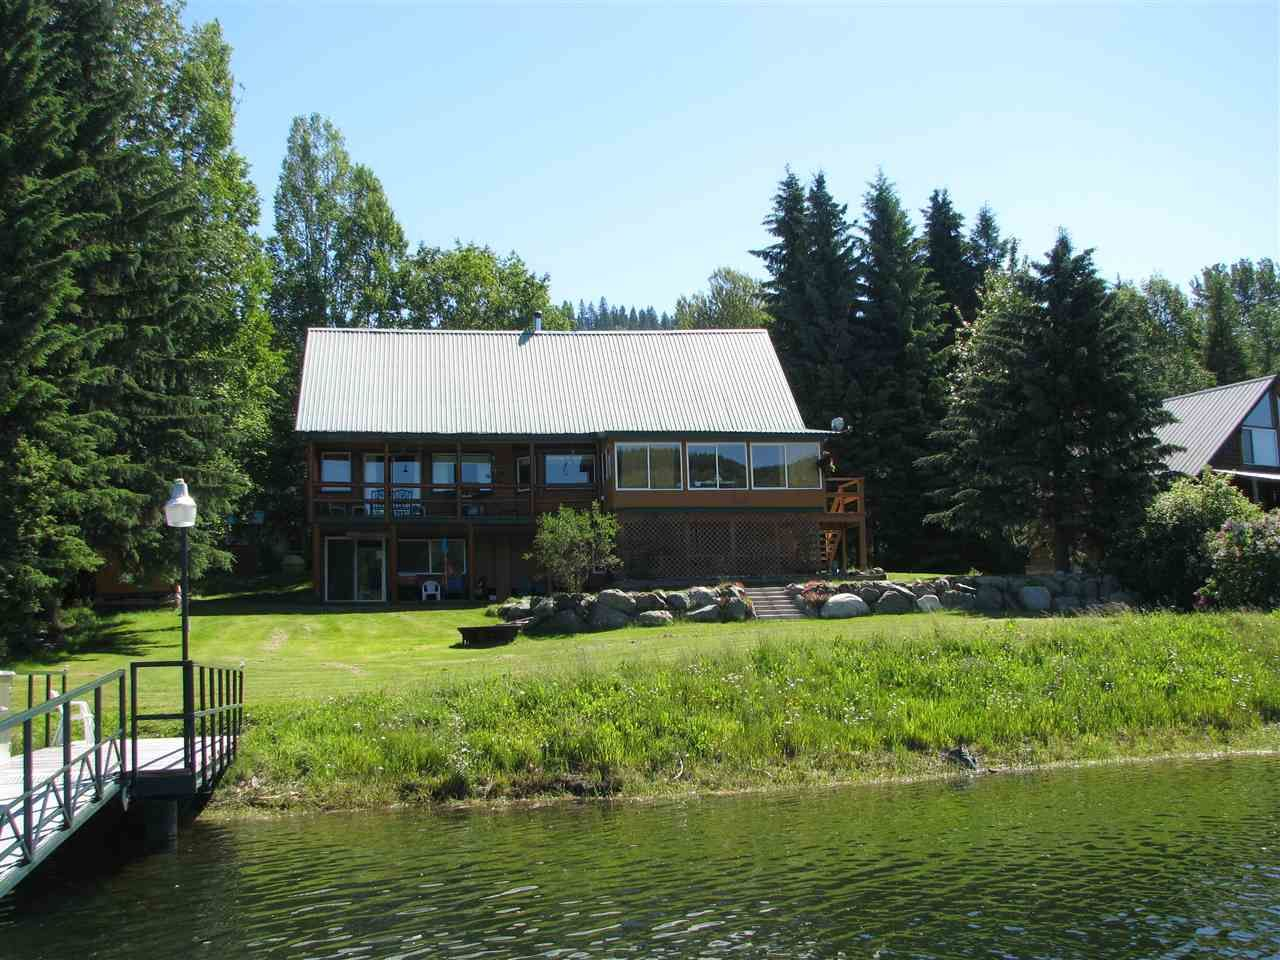 Main Photo: 6147 CEDAR CREEK Road: Likely House for sale (Williams Lake (Zone 27))  : MLS®# R2345866